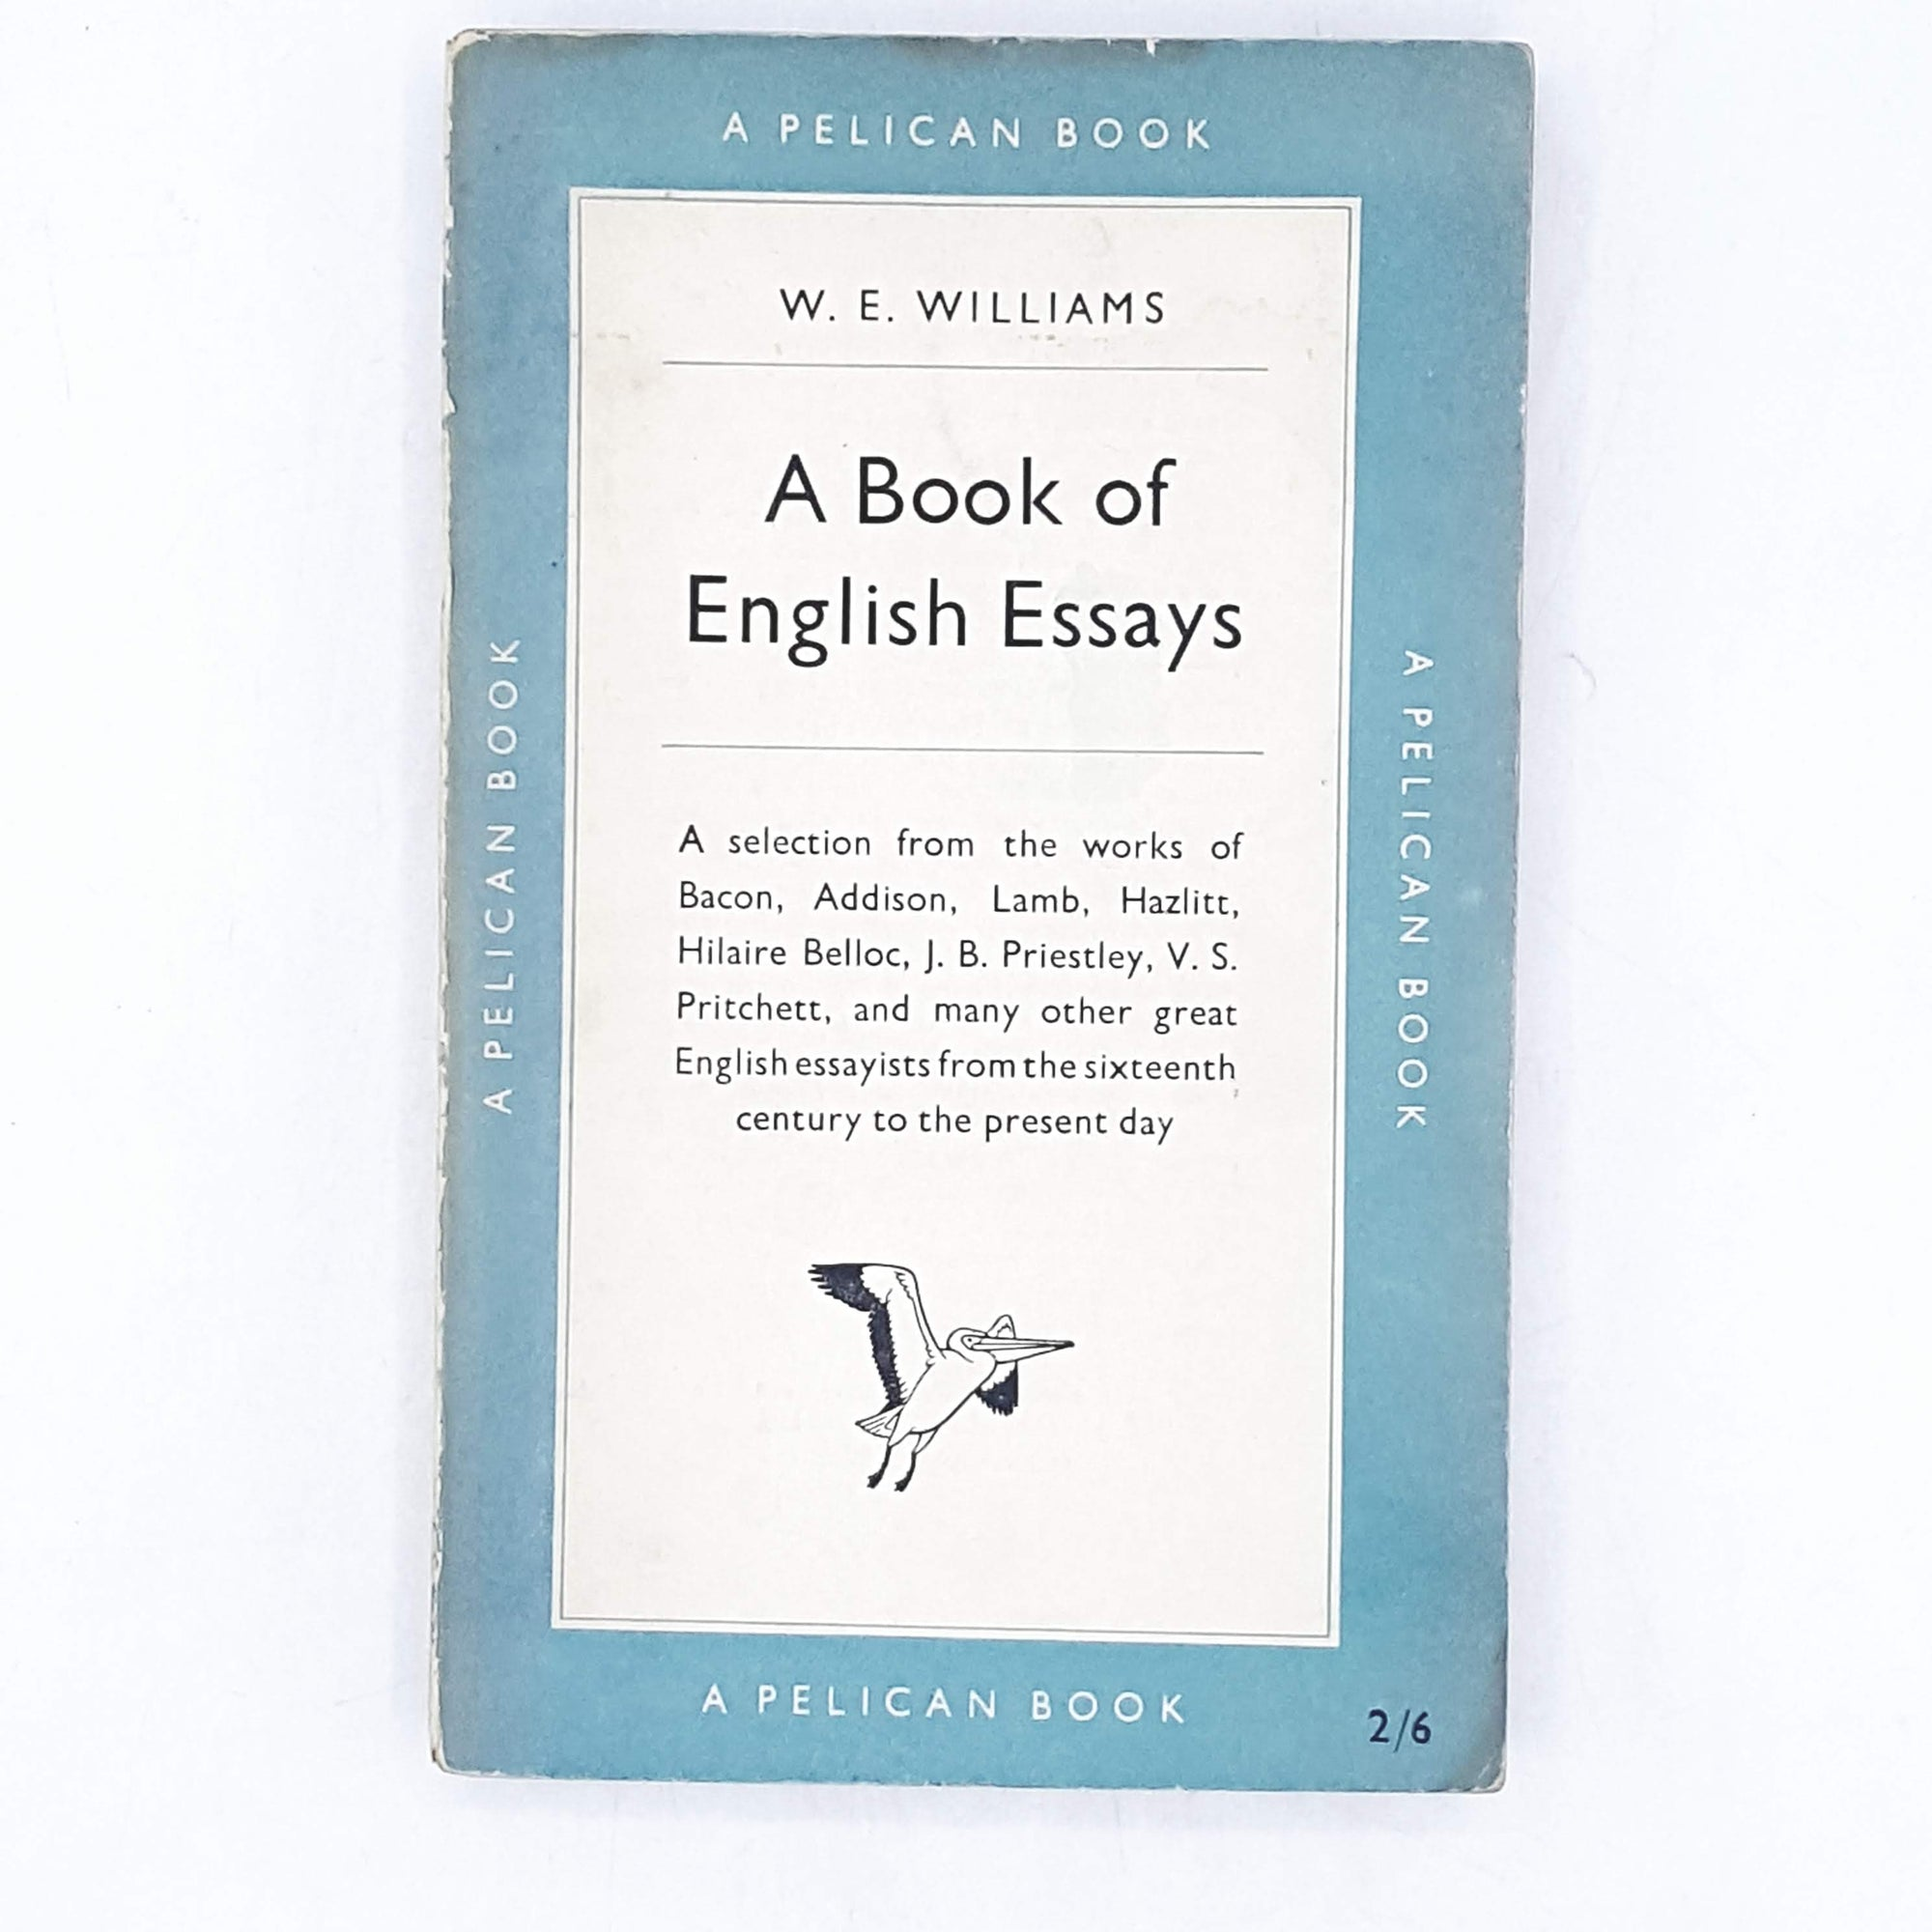 A Book of English Essays by W. E. Williams 1952